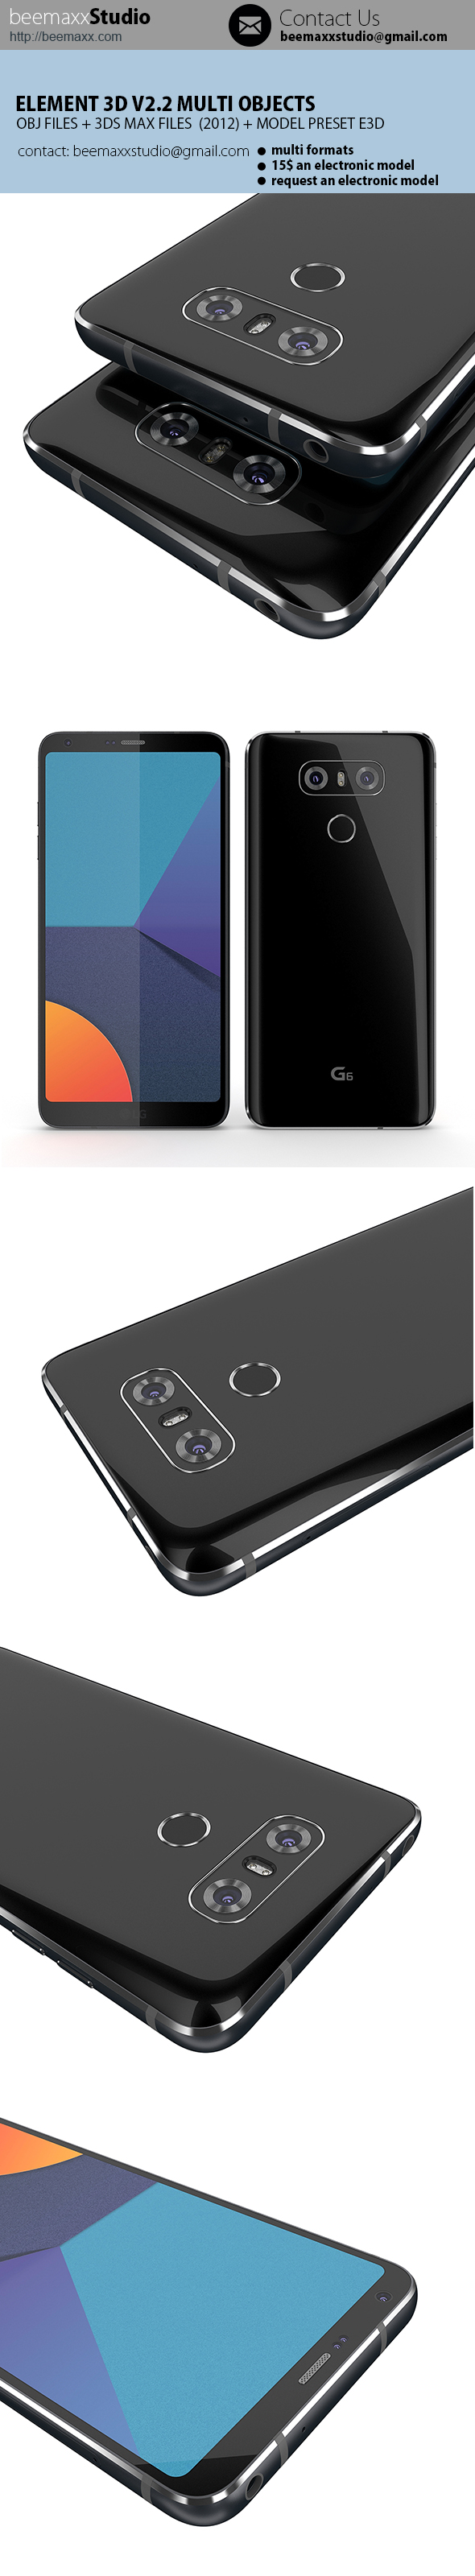 E3D V2.2 - LG G6 - 3DOcean Item for Sale